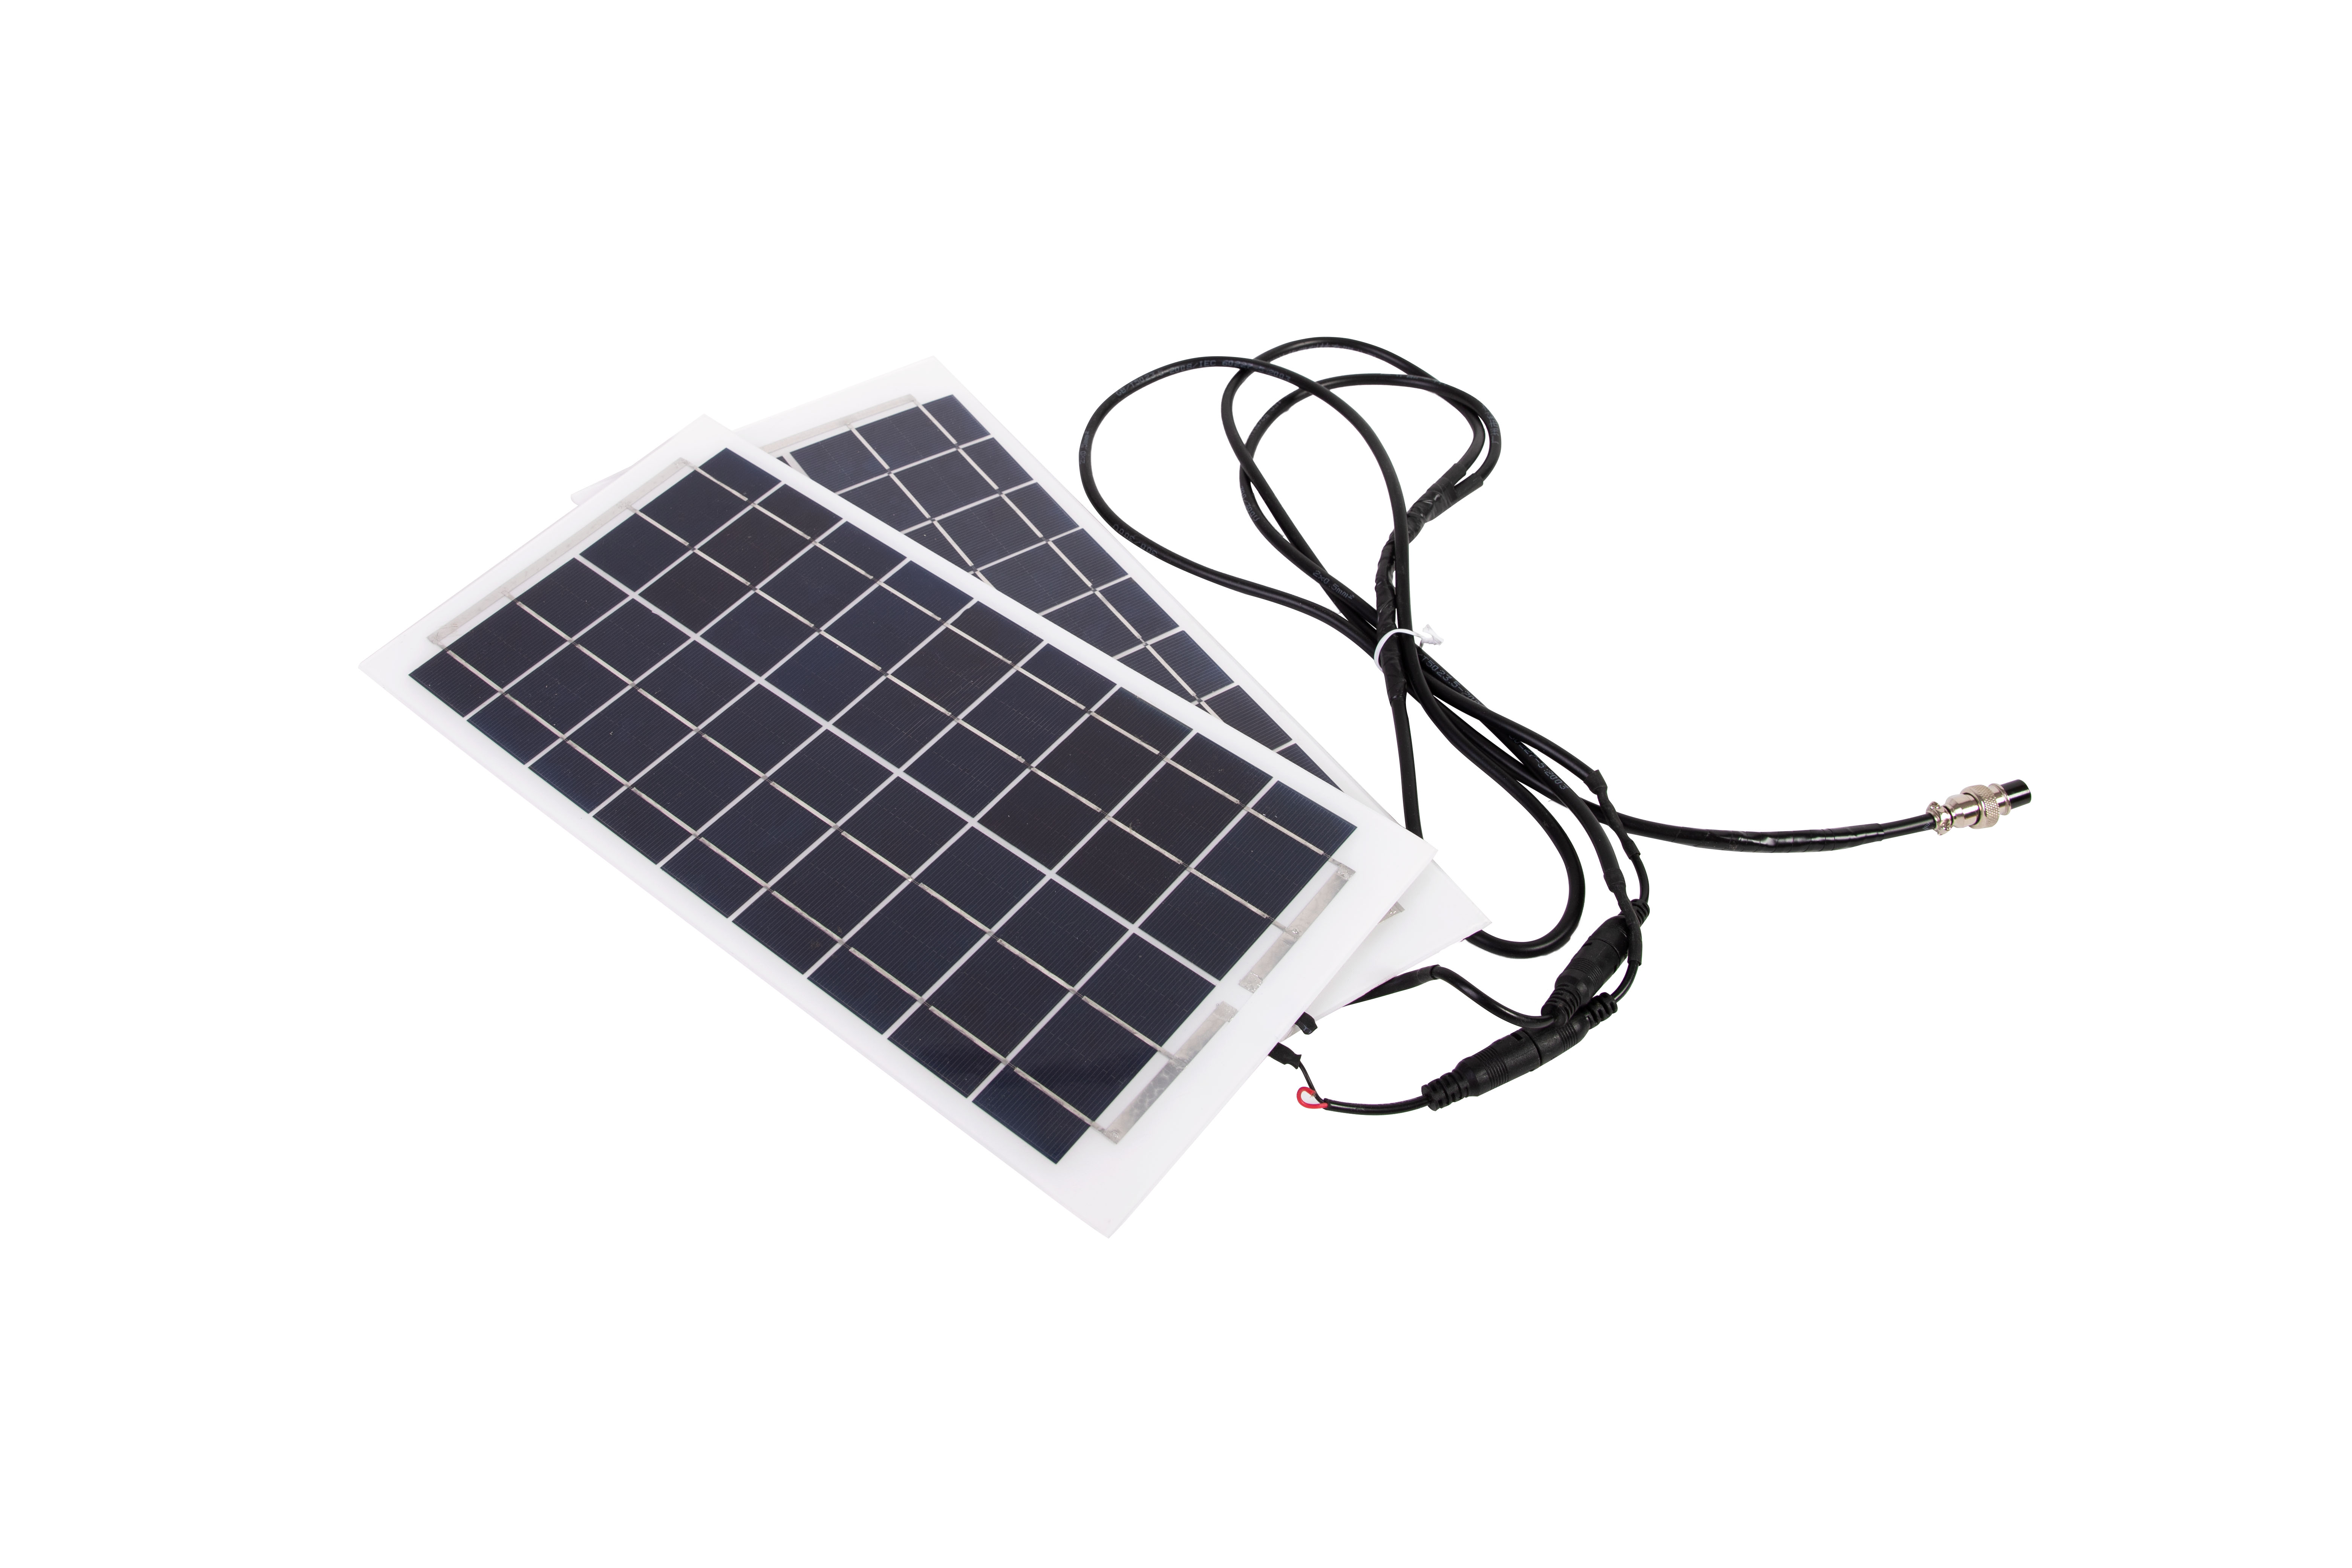 Two flexible solar panels with combined 30W output and Mounting adhesives